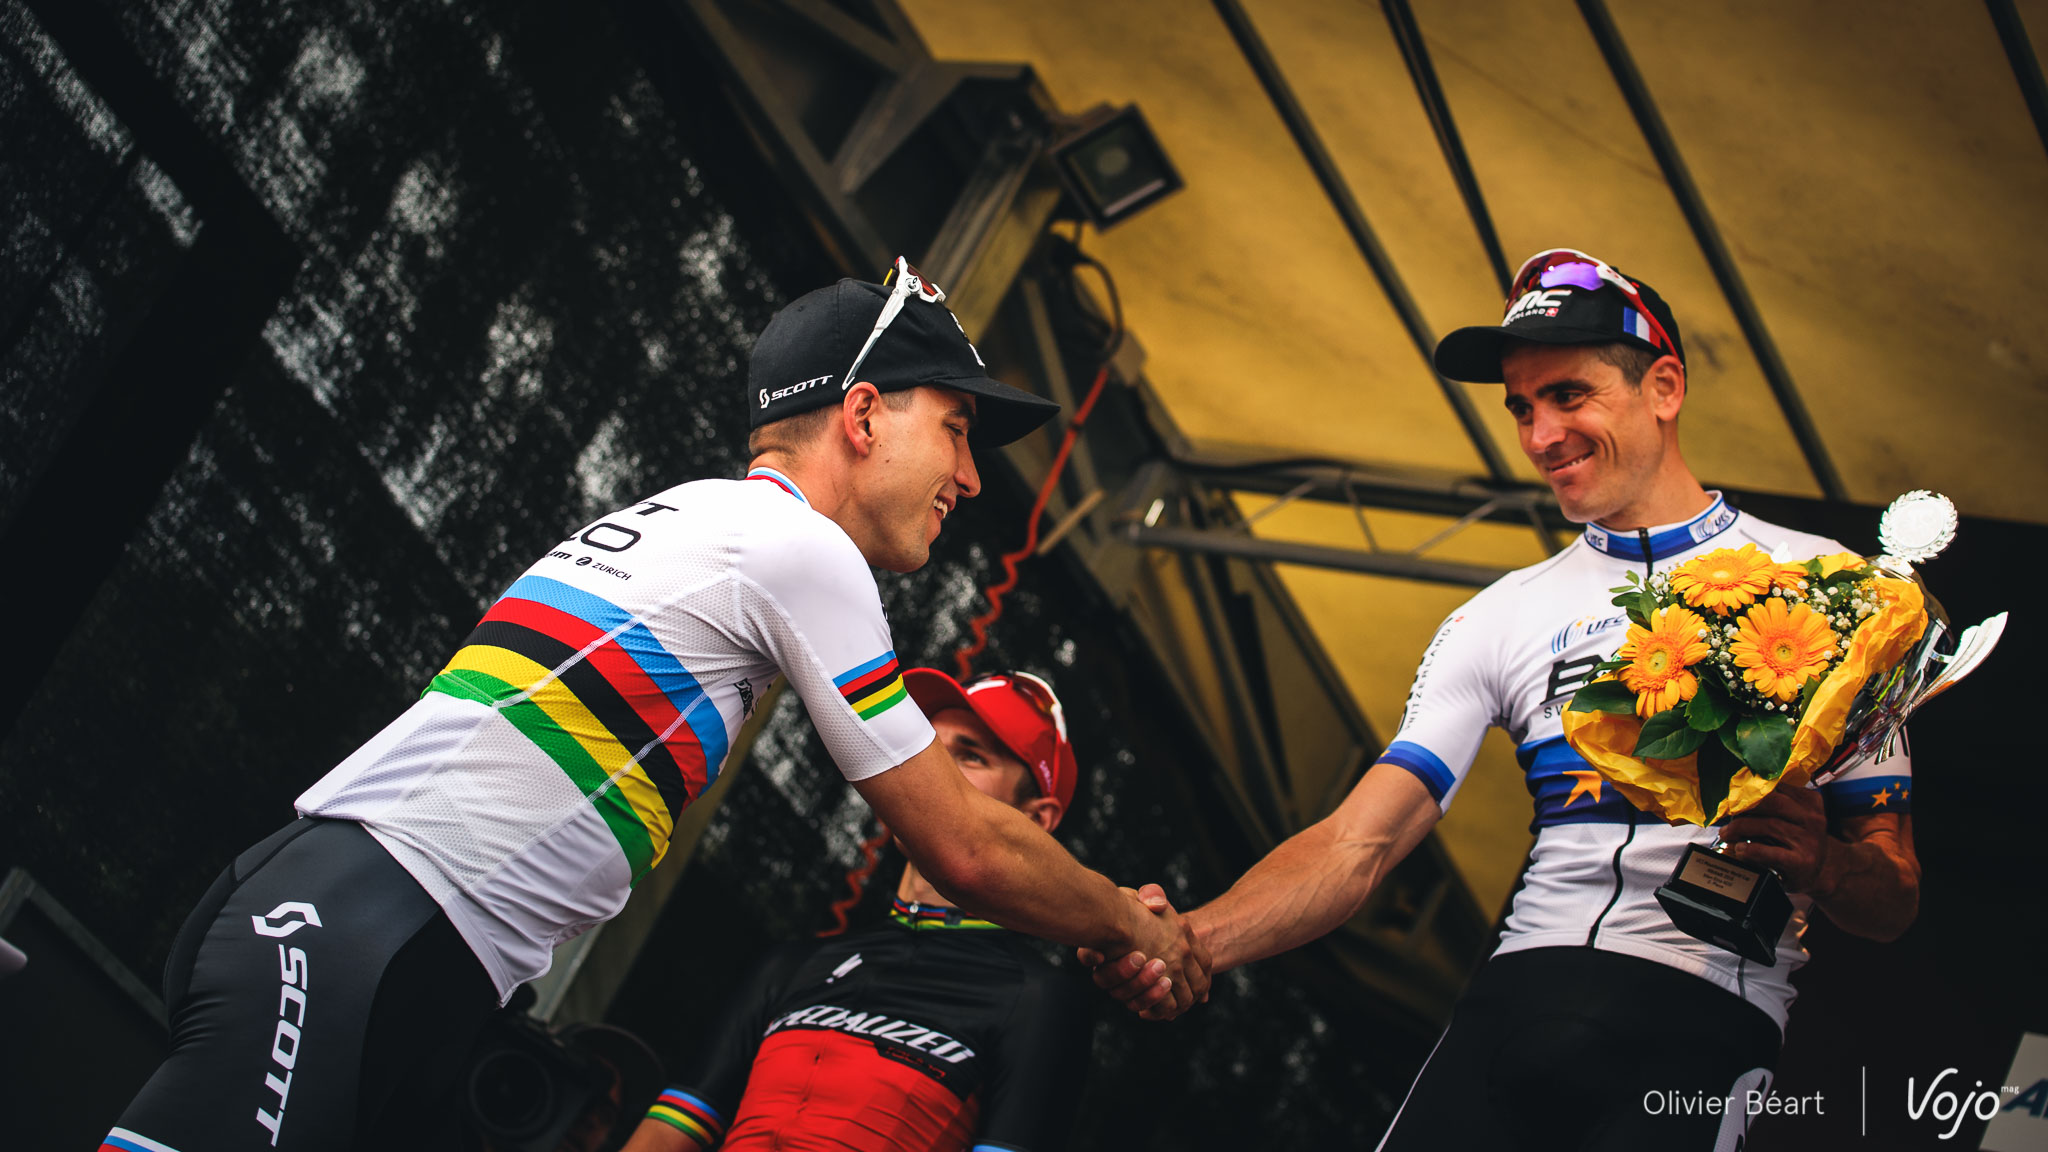 Nino_Schurter_Interview_Scott_Spark_Scale_Albstadt_Copyright_OBeart_VojoMag-10